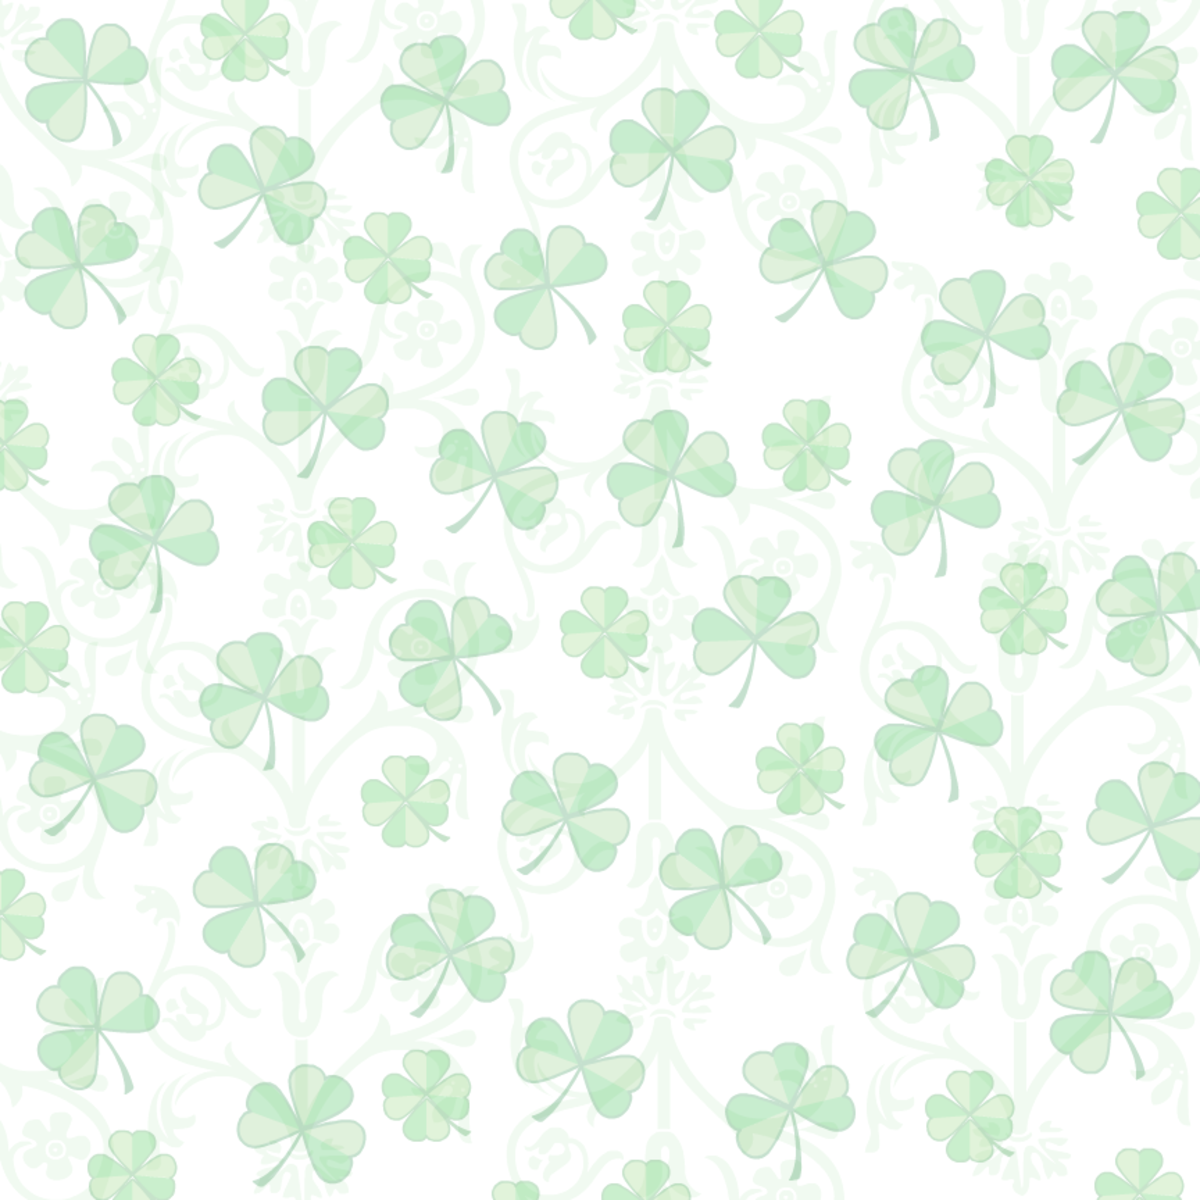 Shamrock white background scrapbooking paper